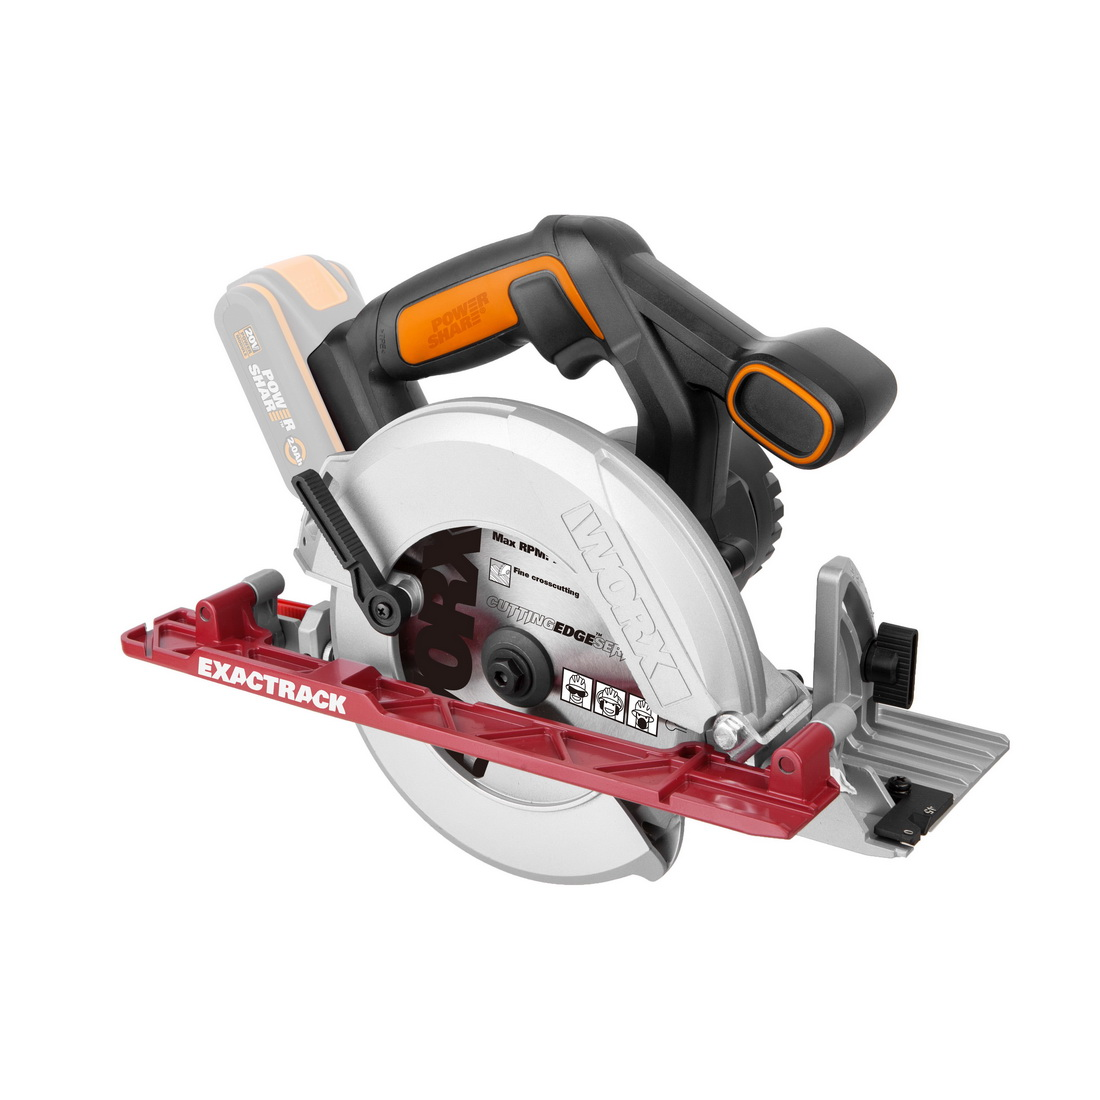 Cordless Circular Saw Skin 165mm 20V 4900rpm WX530.9